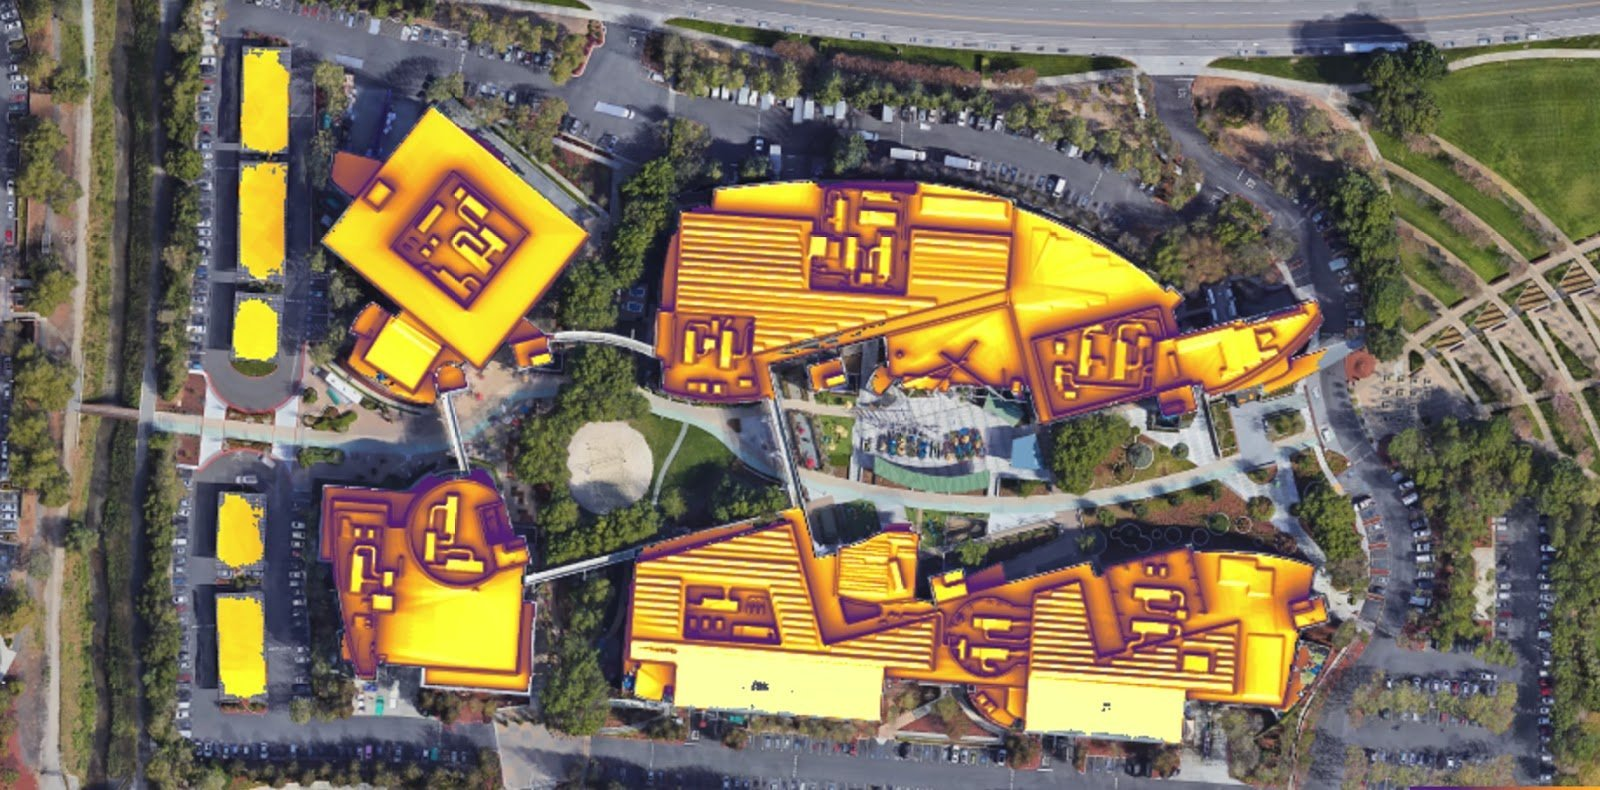 Google's New Tool Says Nearly 80 Percent of Roofs Are Sunny Enough for Solar Panels